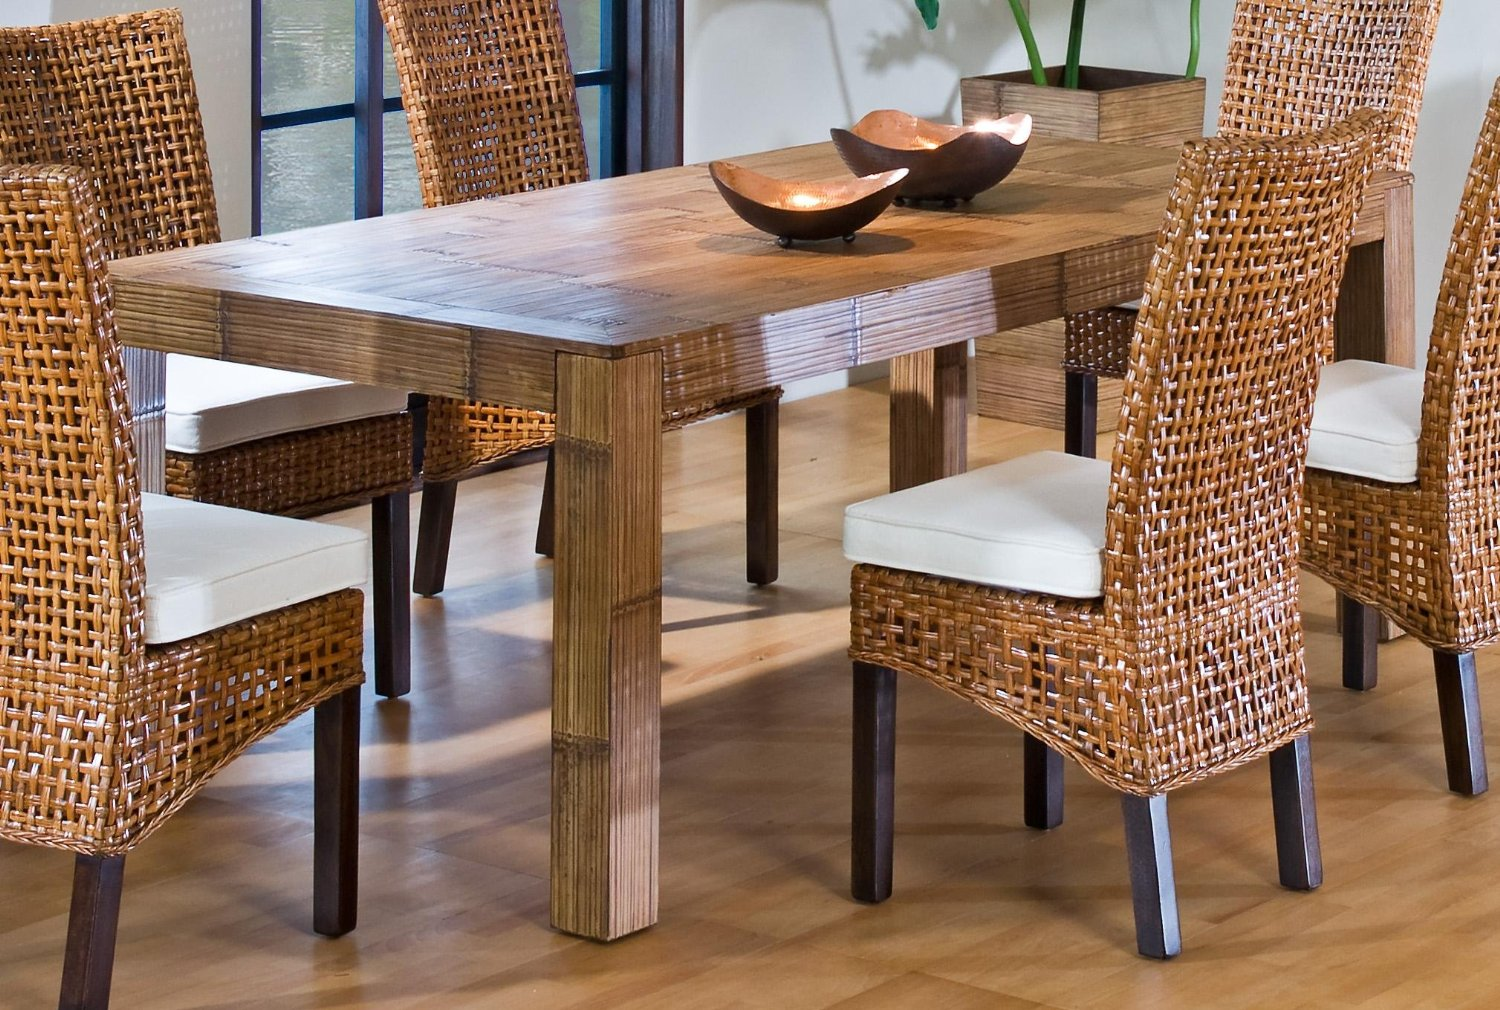 Seagrass Bedroom Furniture Dining Table Sets Seagrass Room Seagrass Dining Gucobacom